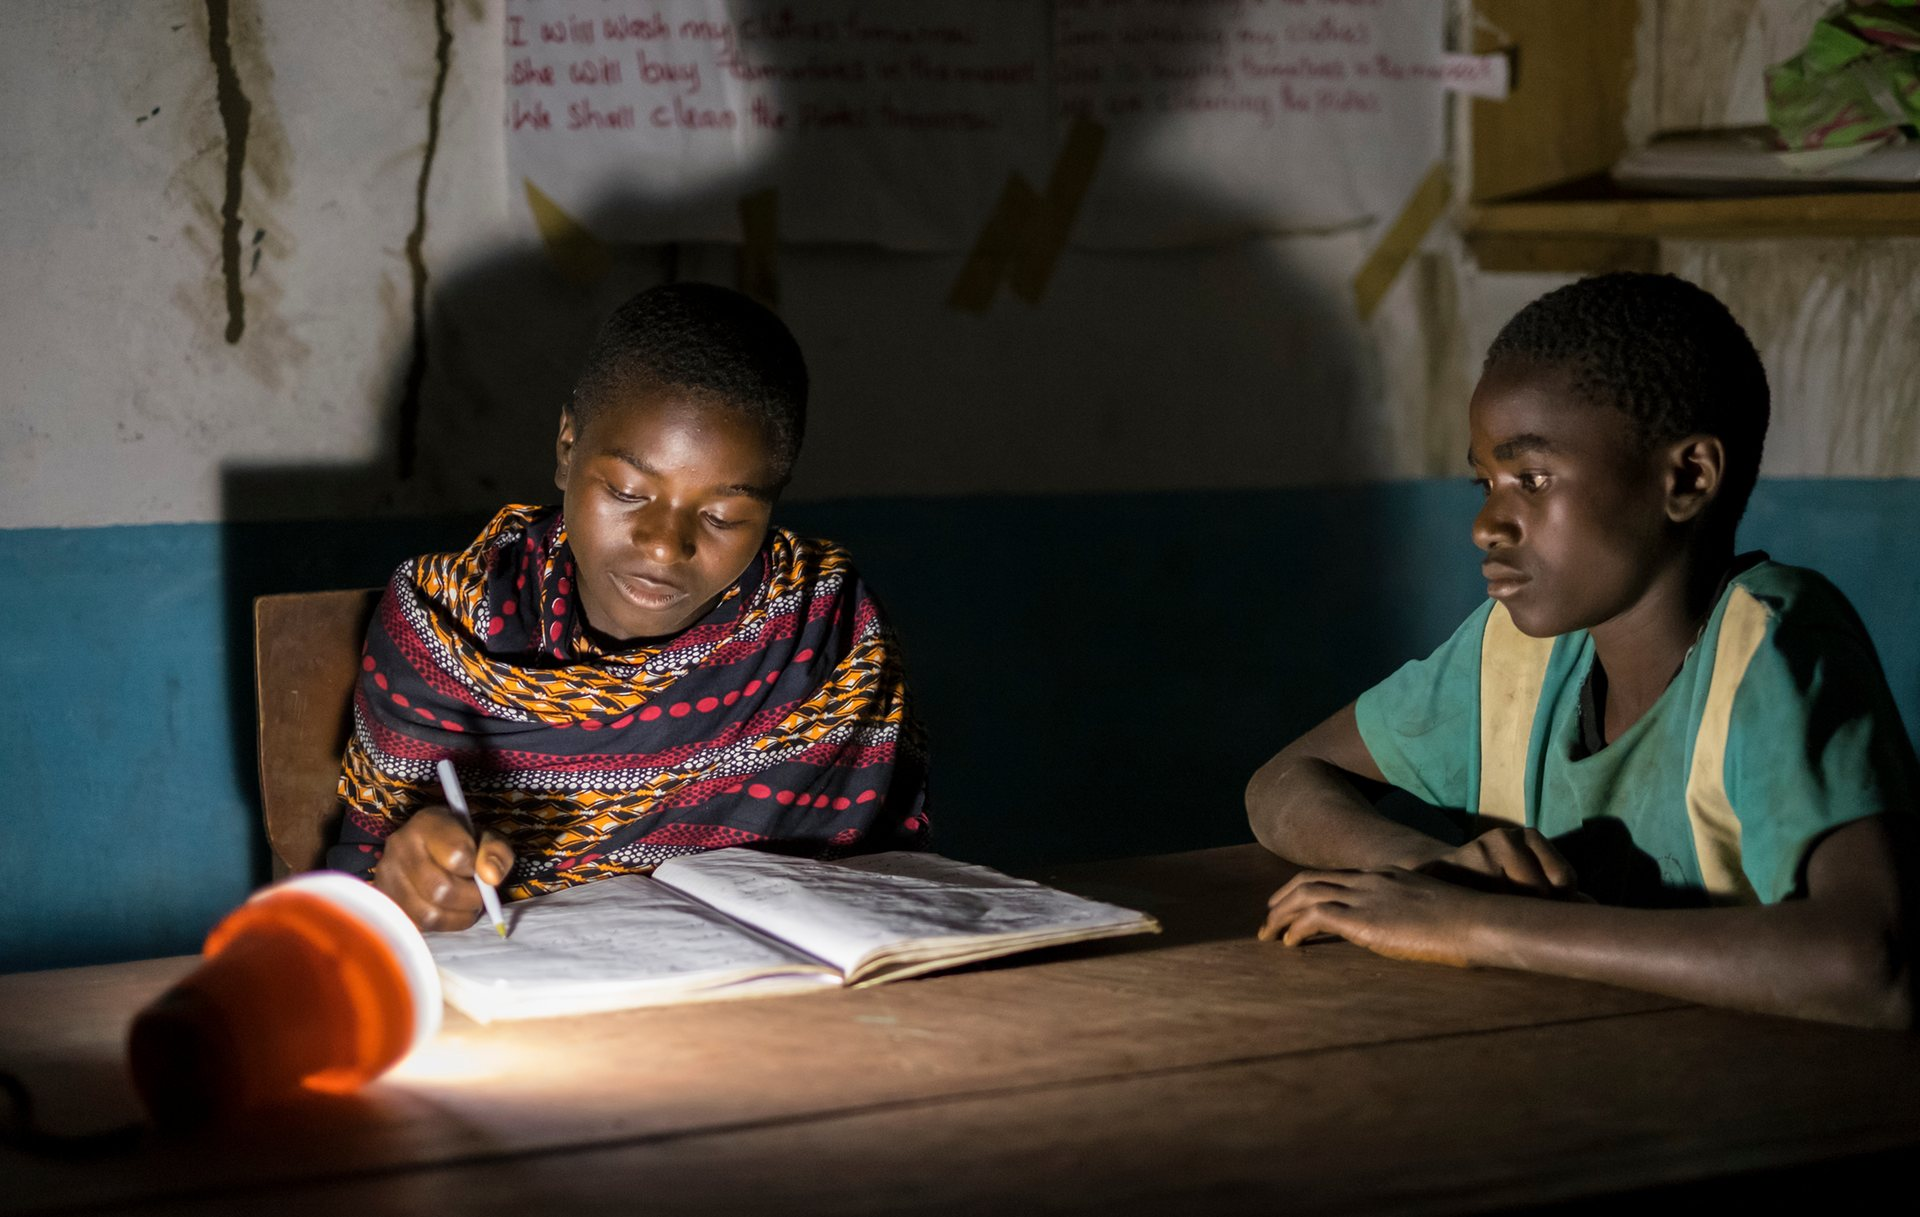 Pupils prepare for exams at night, using solar lamps, in Gumbi library